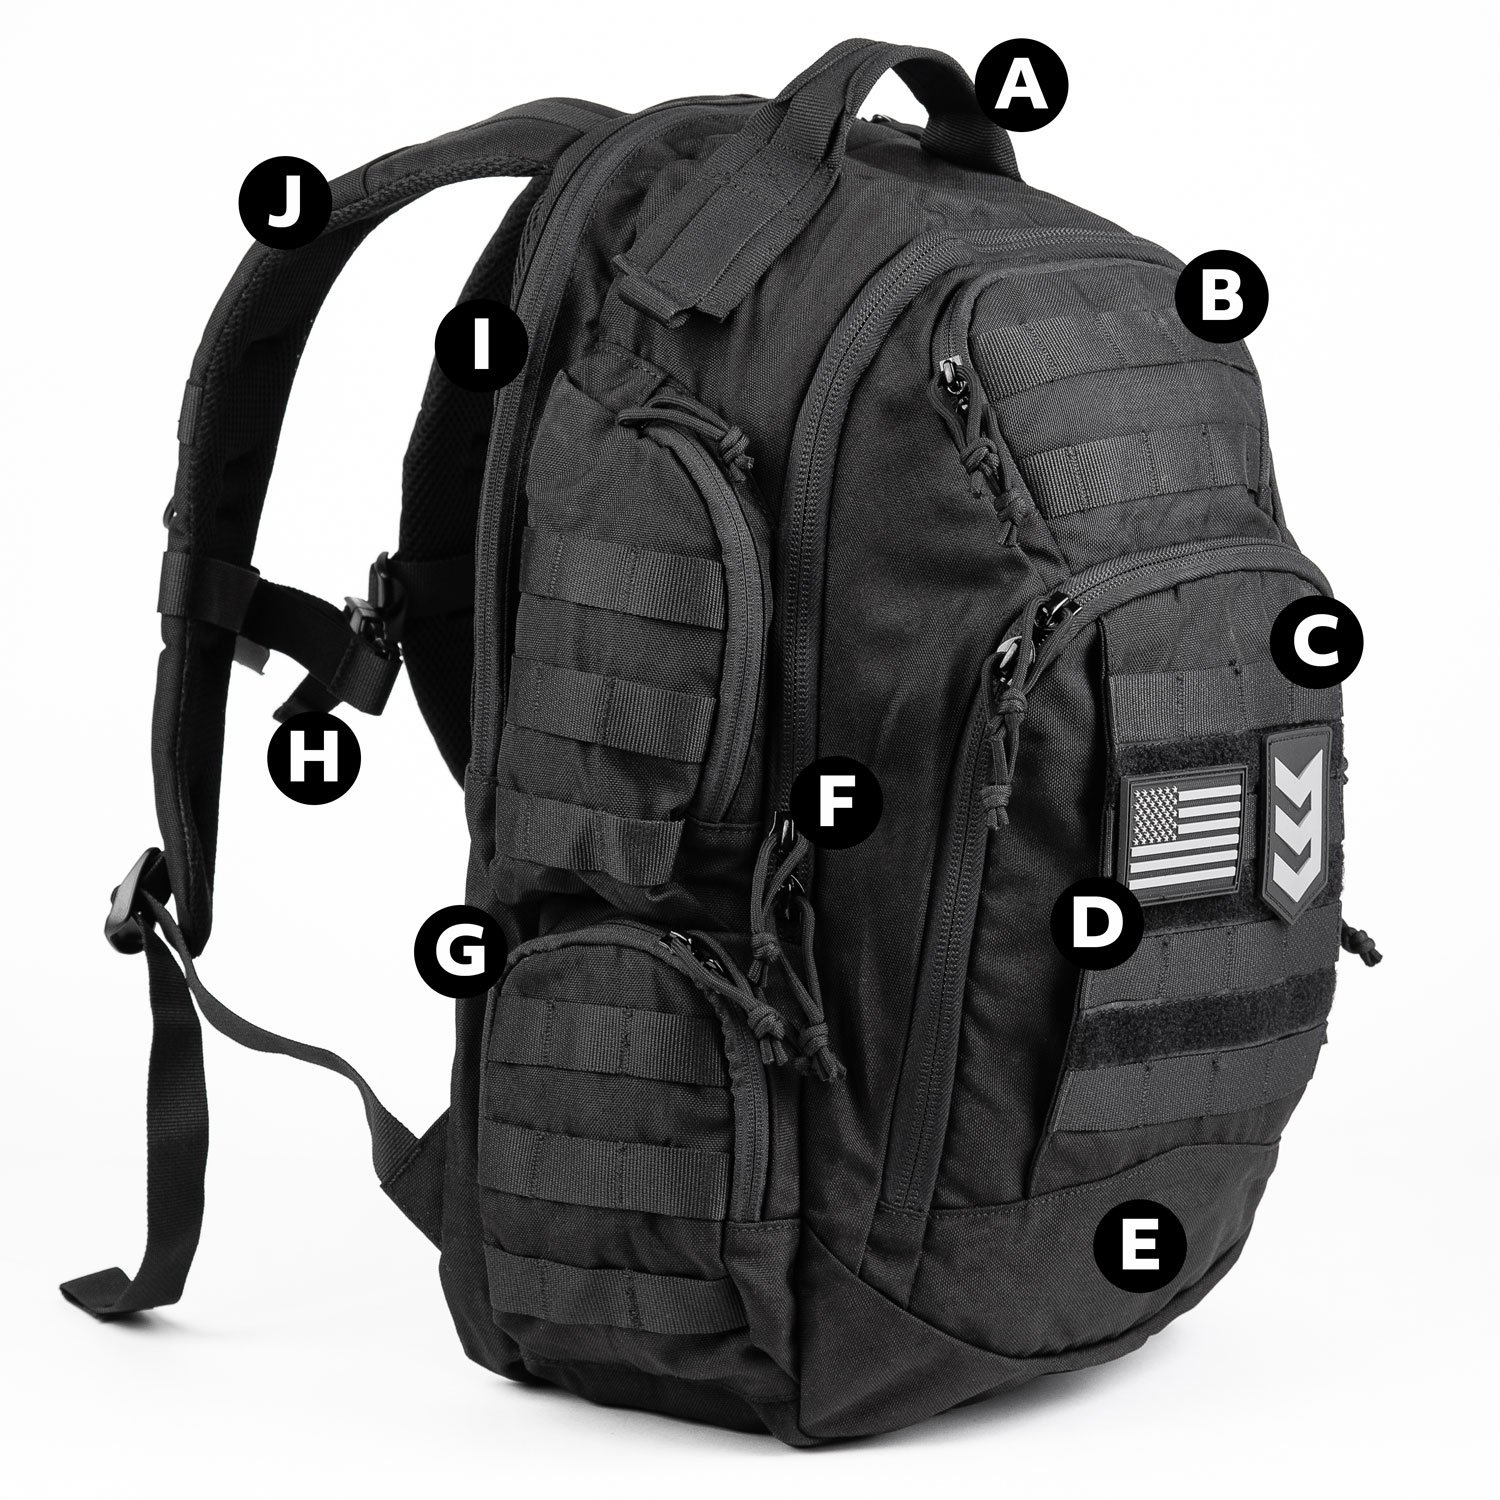 3V Gear Shield Anti-Theft Backpack